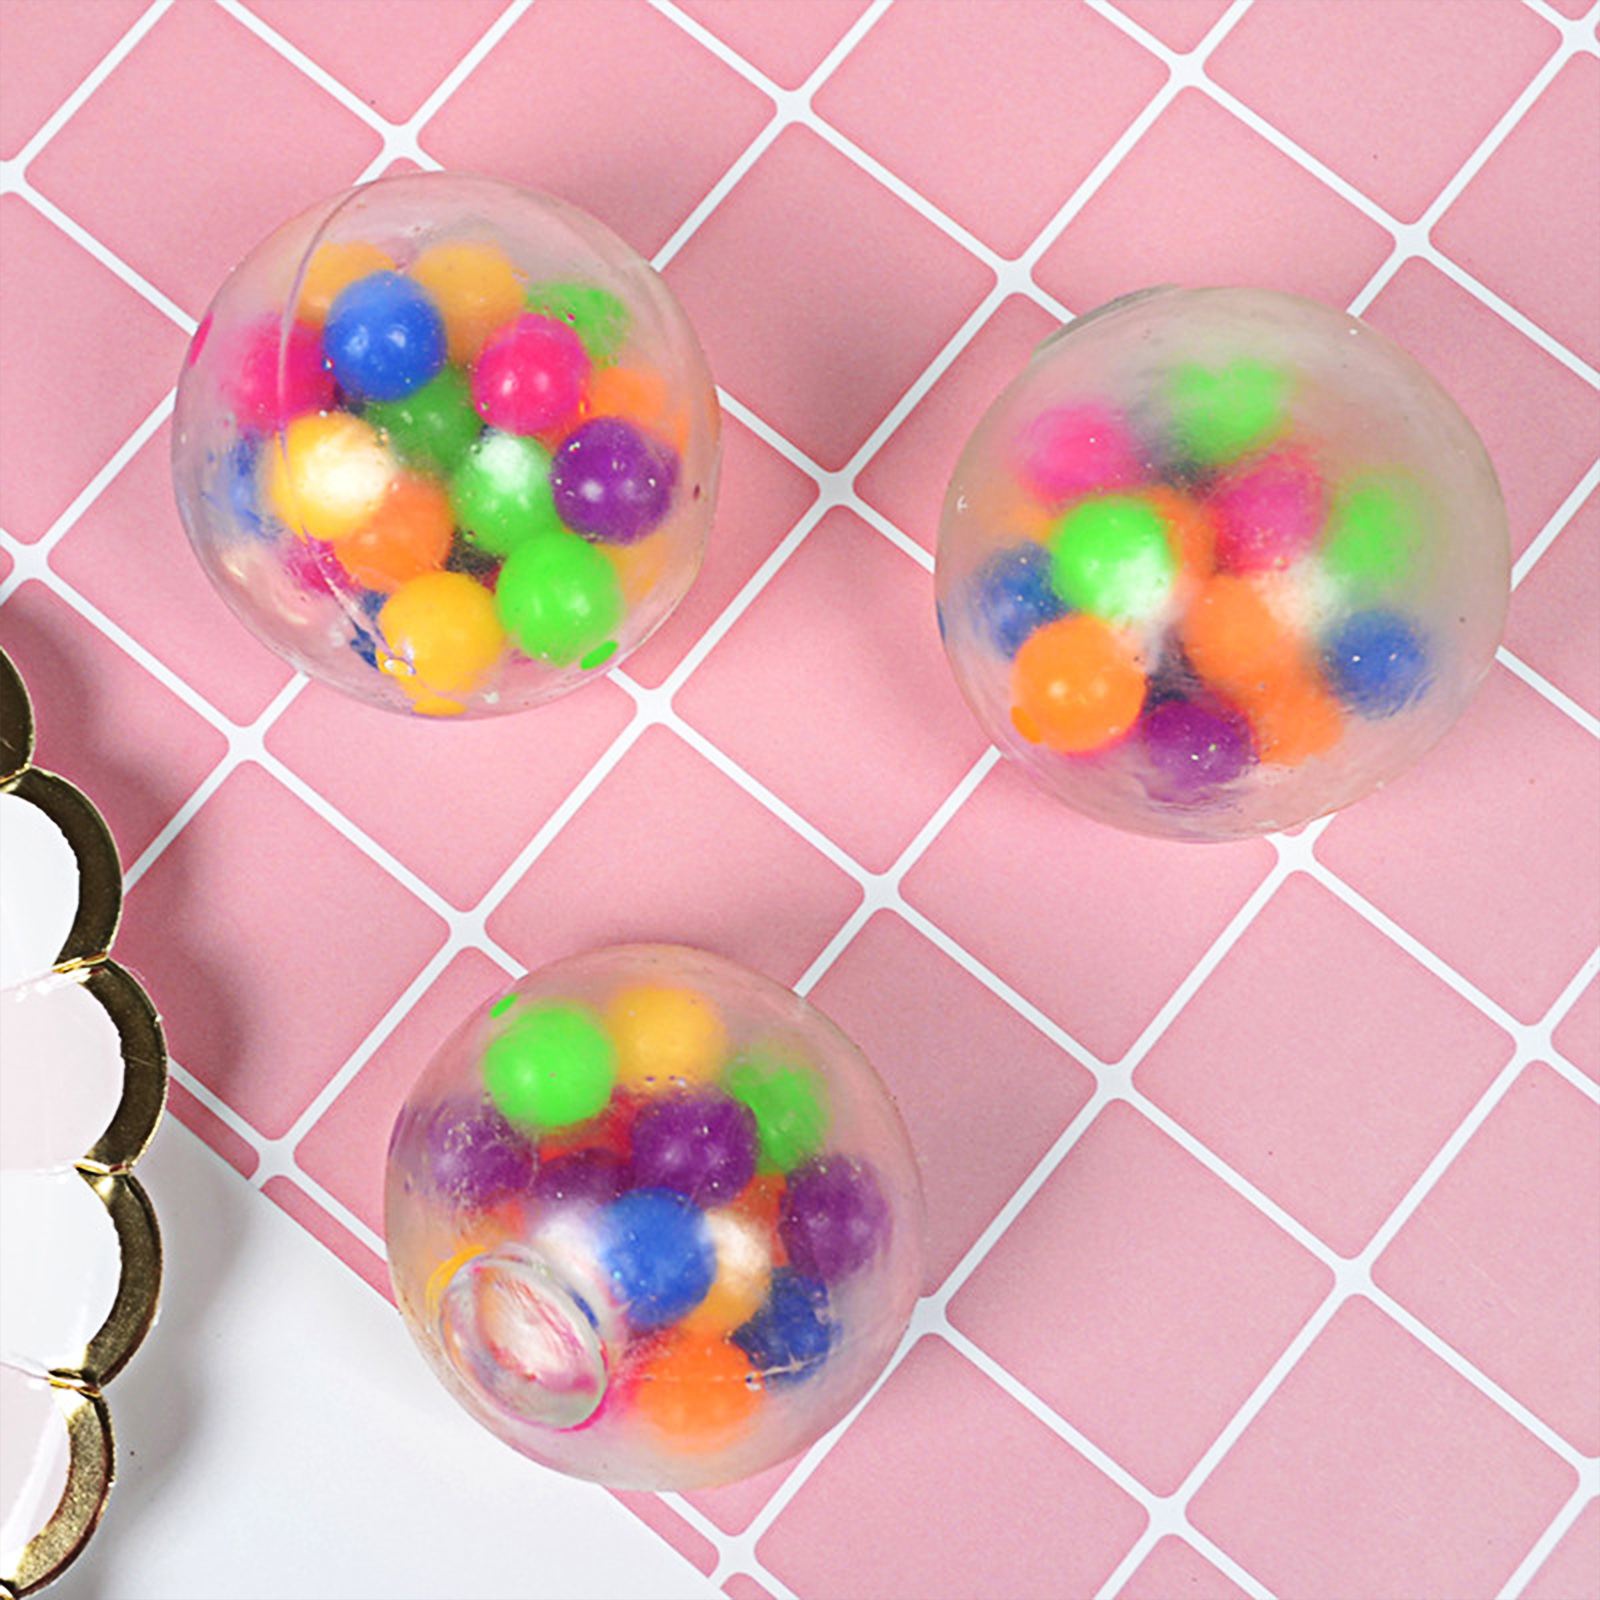 Squishy Toy Anti-Stress-Toys Rainbow-Ball Bead Squeezable-Stress Spongy Hot-Sale img5